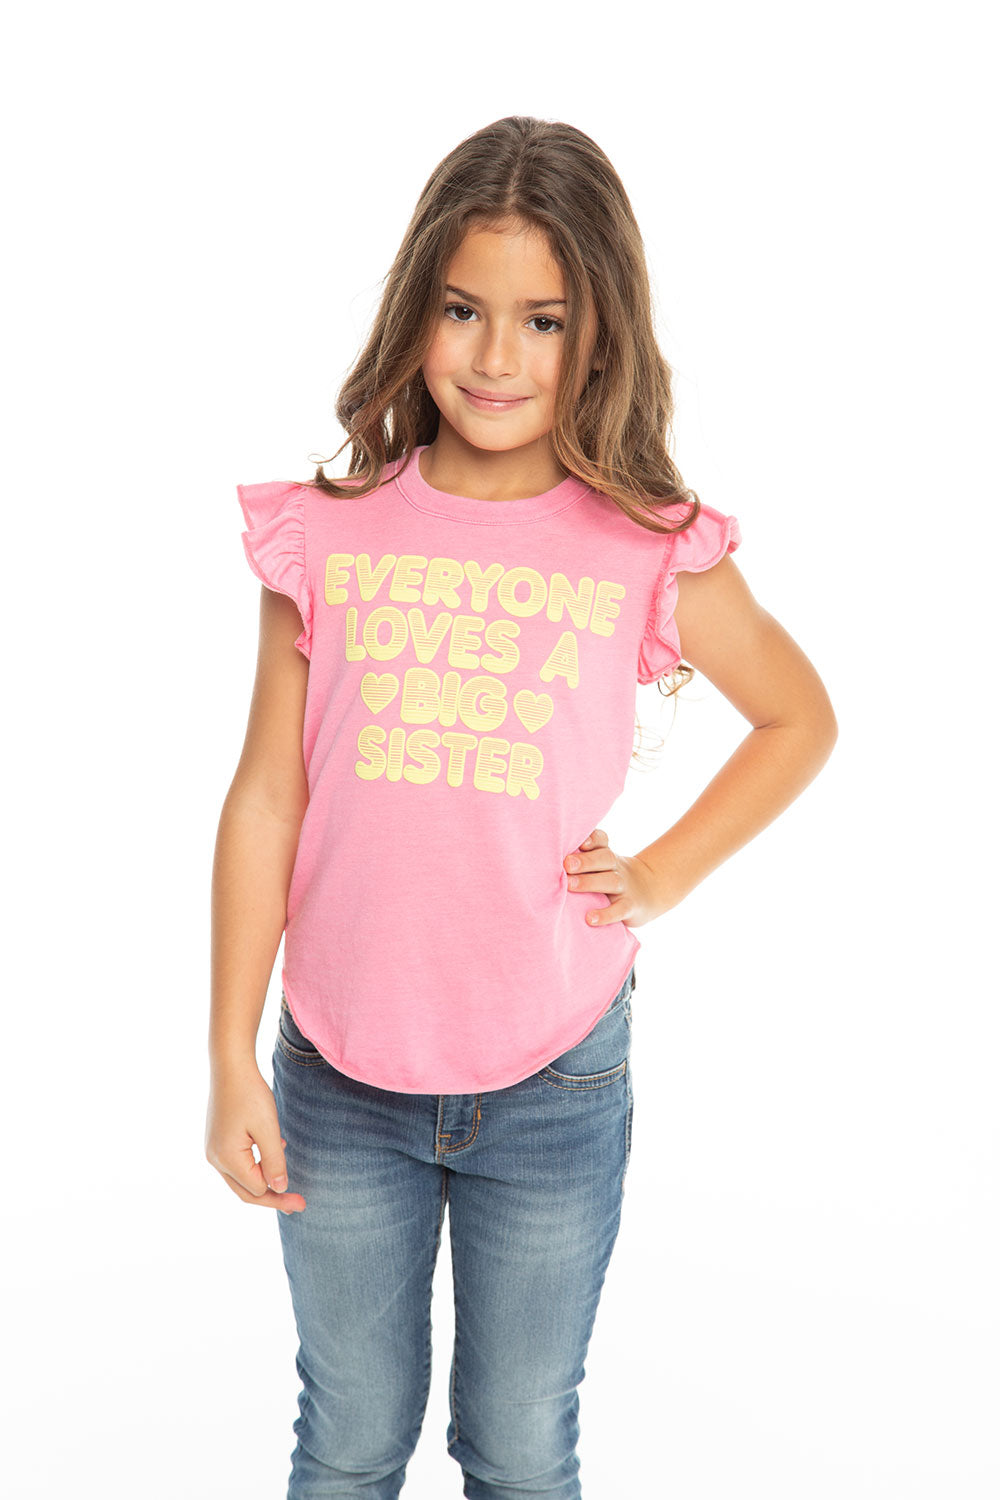 Big Sister Love, Girls, chaserbrand.com,chaser clothing,chaser apparel,chaser los angeles